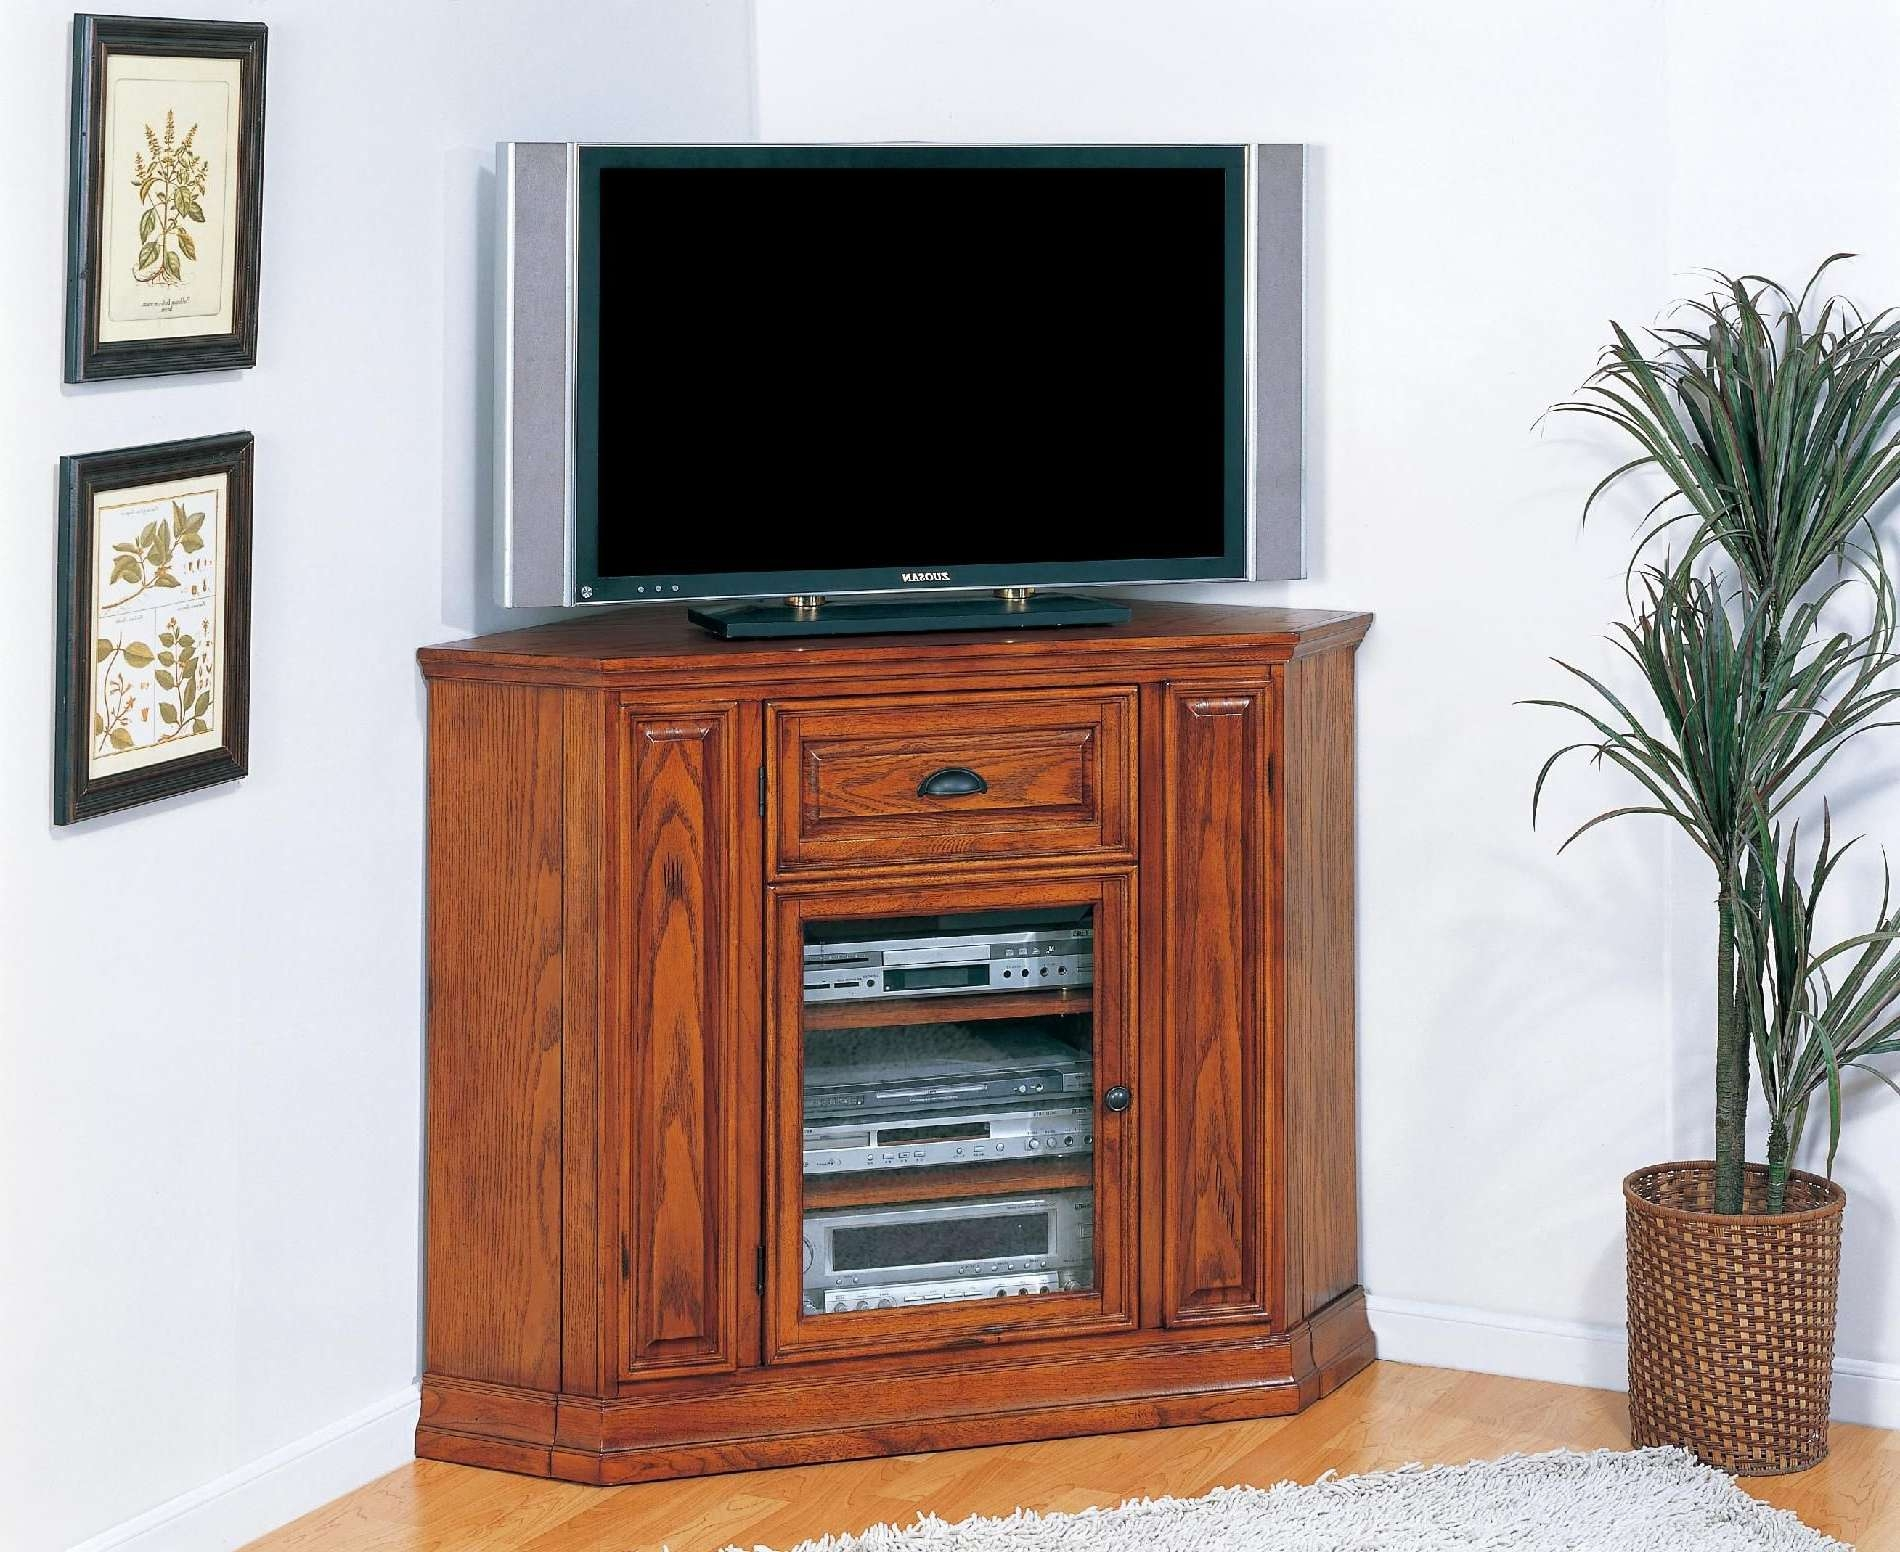 Tall Corner Tv Cabinets For Flat Screens • Corner Cabinets Throughout Corner Tv Cabinets For Flat Screens (View 16 of 20)